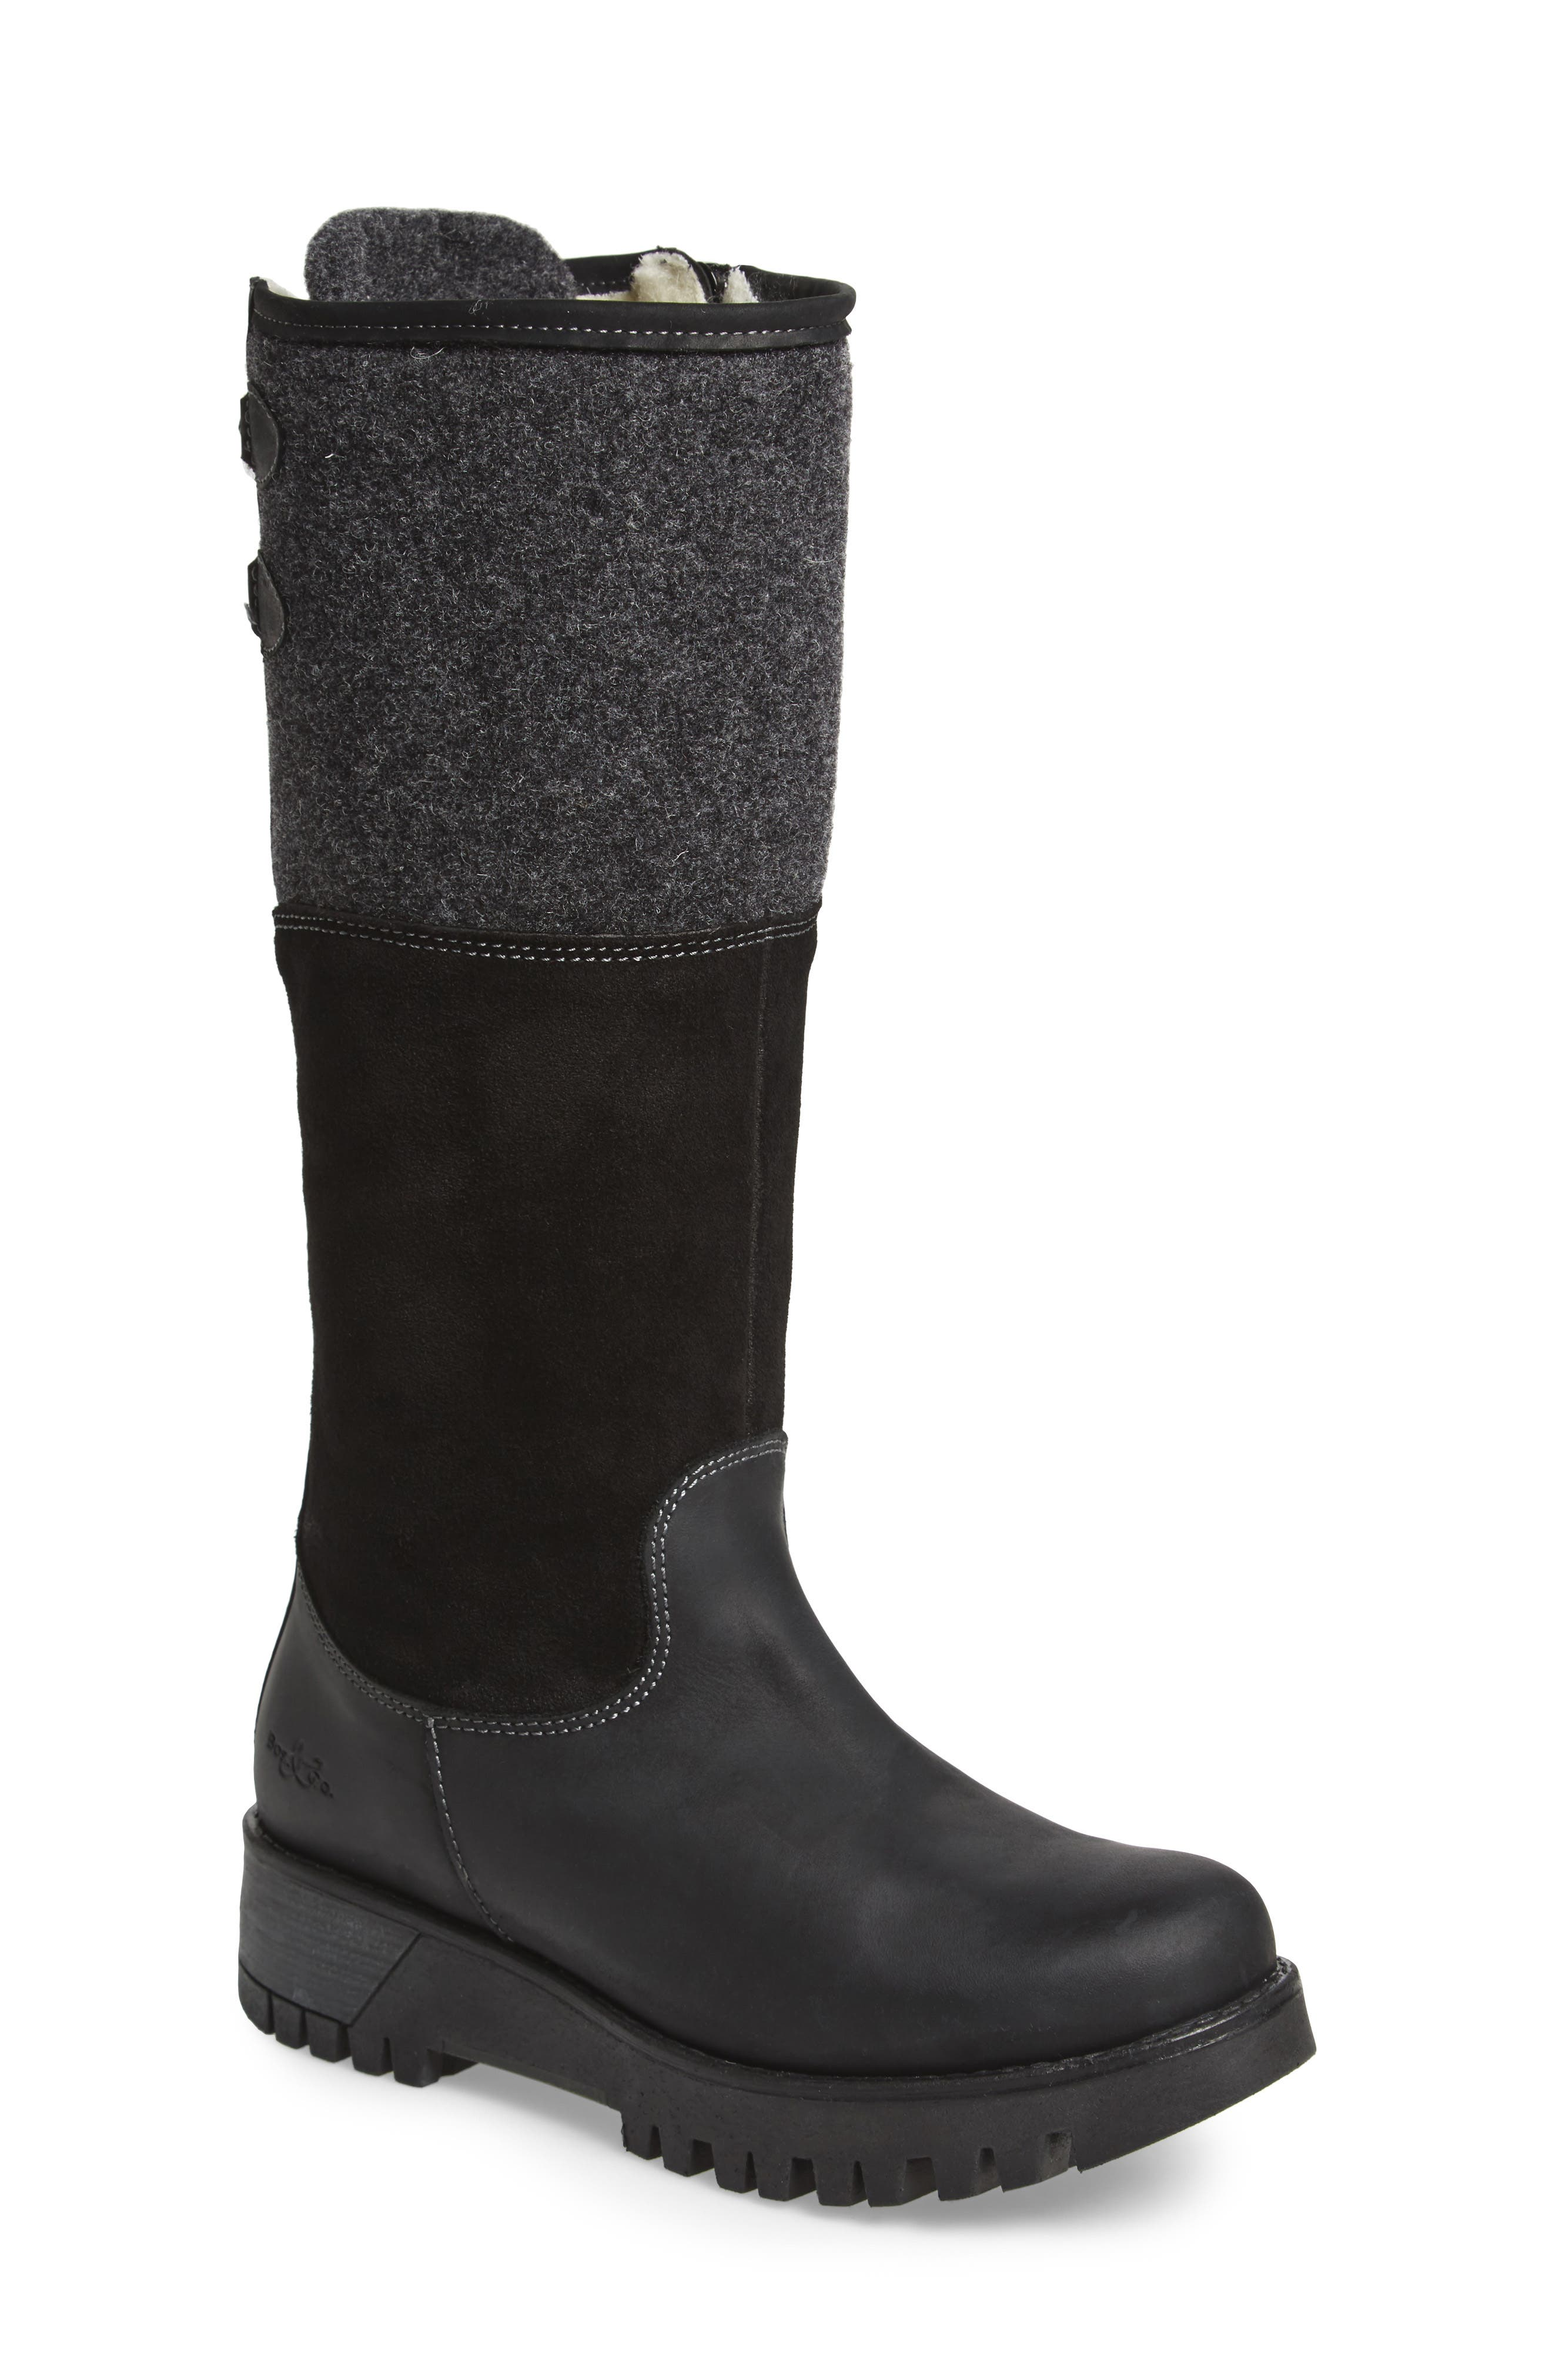 Alternate Image 1 Selected - Bos. & Co. 'Ginger' Waterproof Mid Calf Platform Boot (Women)